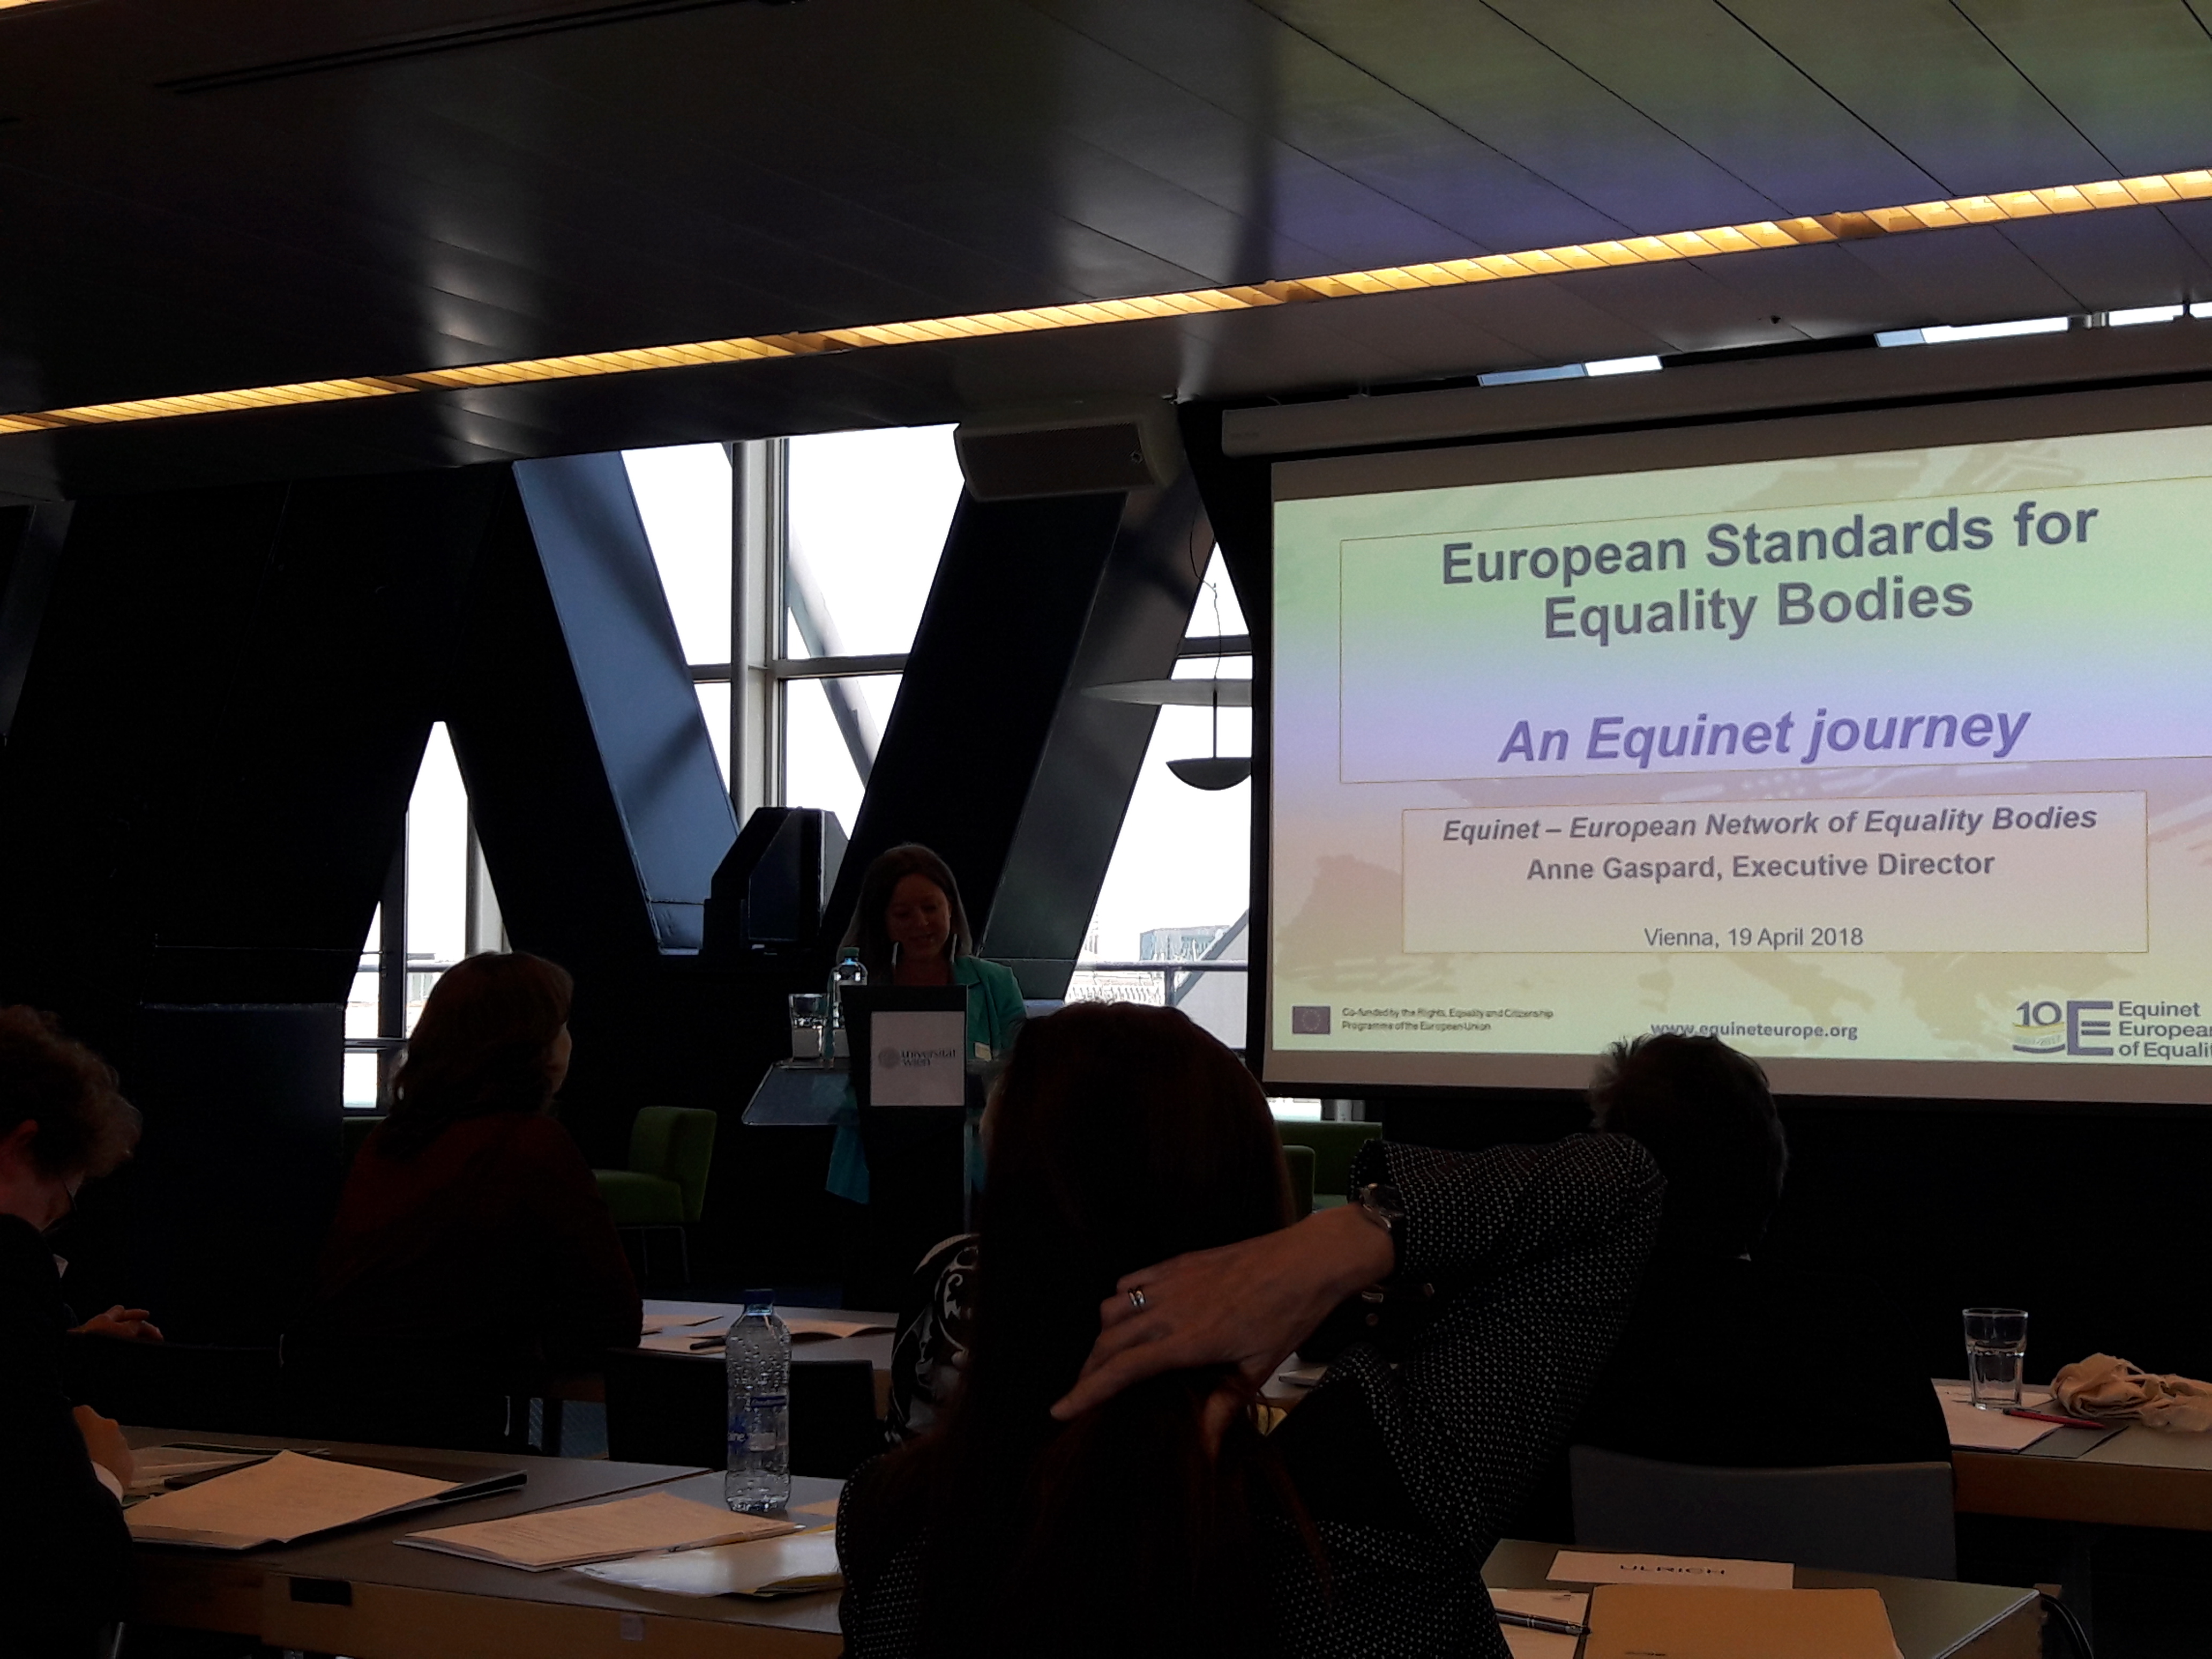 Anne Gaspard presenting Standards for Equality Bodies